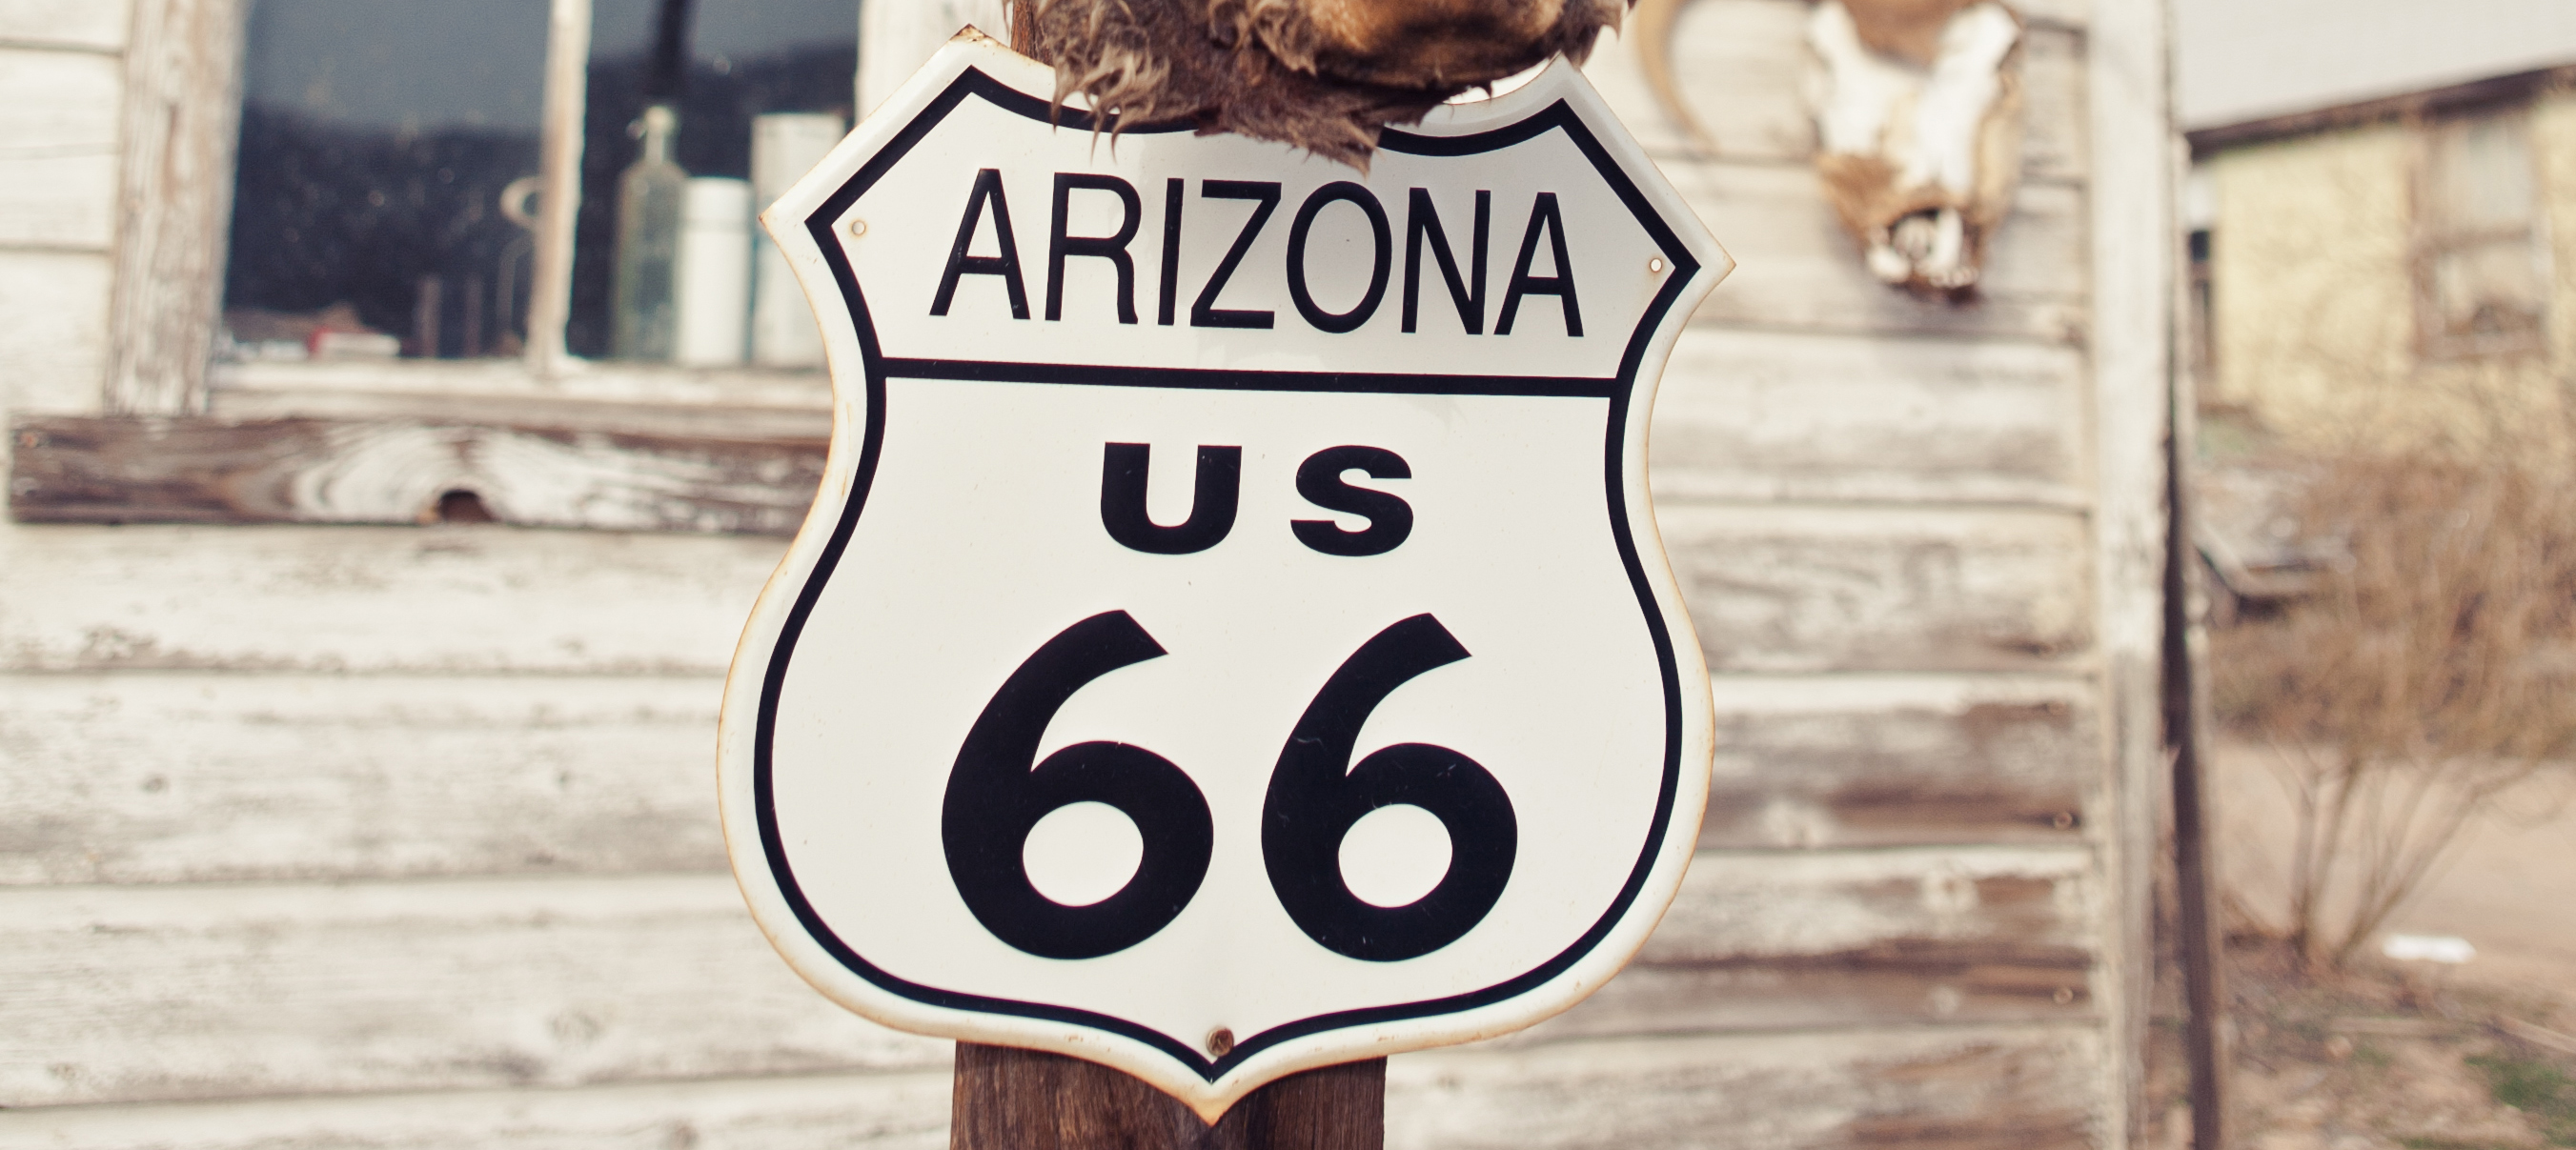 Route 66 – A Photographic journey